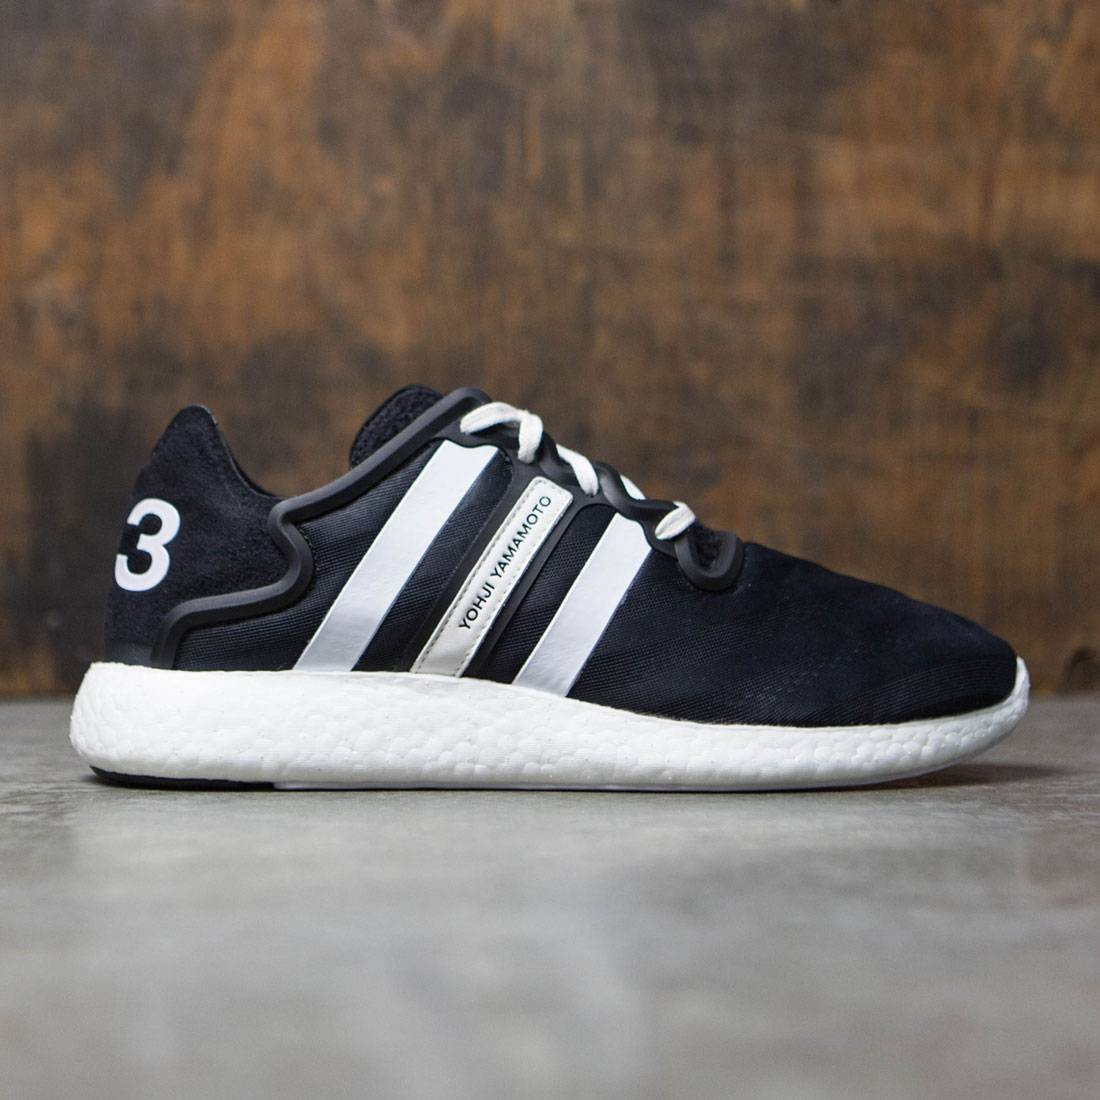 6643b0b212077 Adidas Y-3 Men Yohji Run black footwear white core black